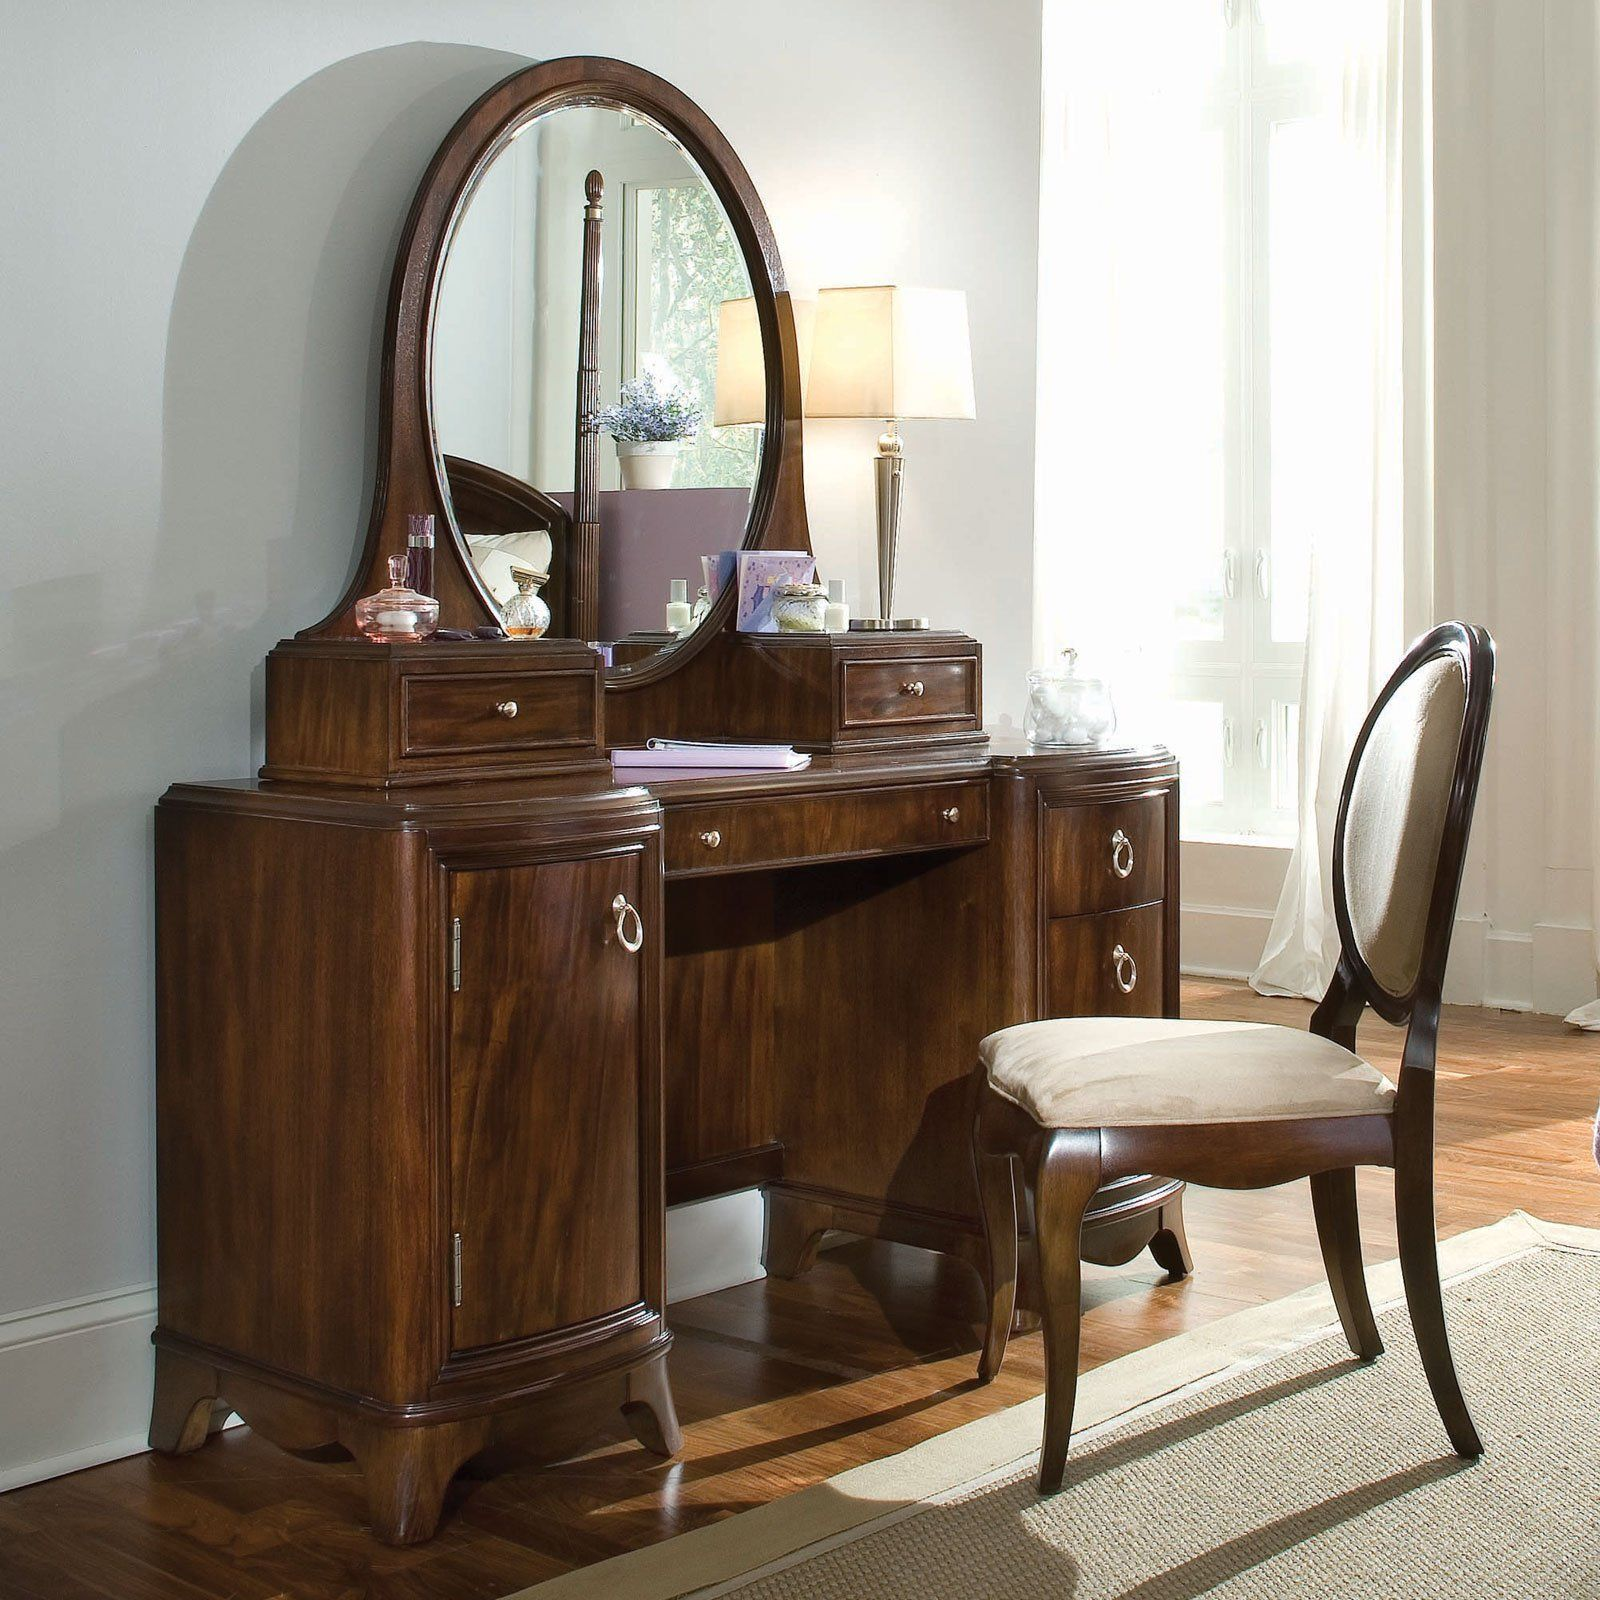 Elegant Dark Brown Wooden Antique Vanity Table Design With Chair And Round  Mirror Beside Lamp Desk